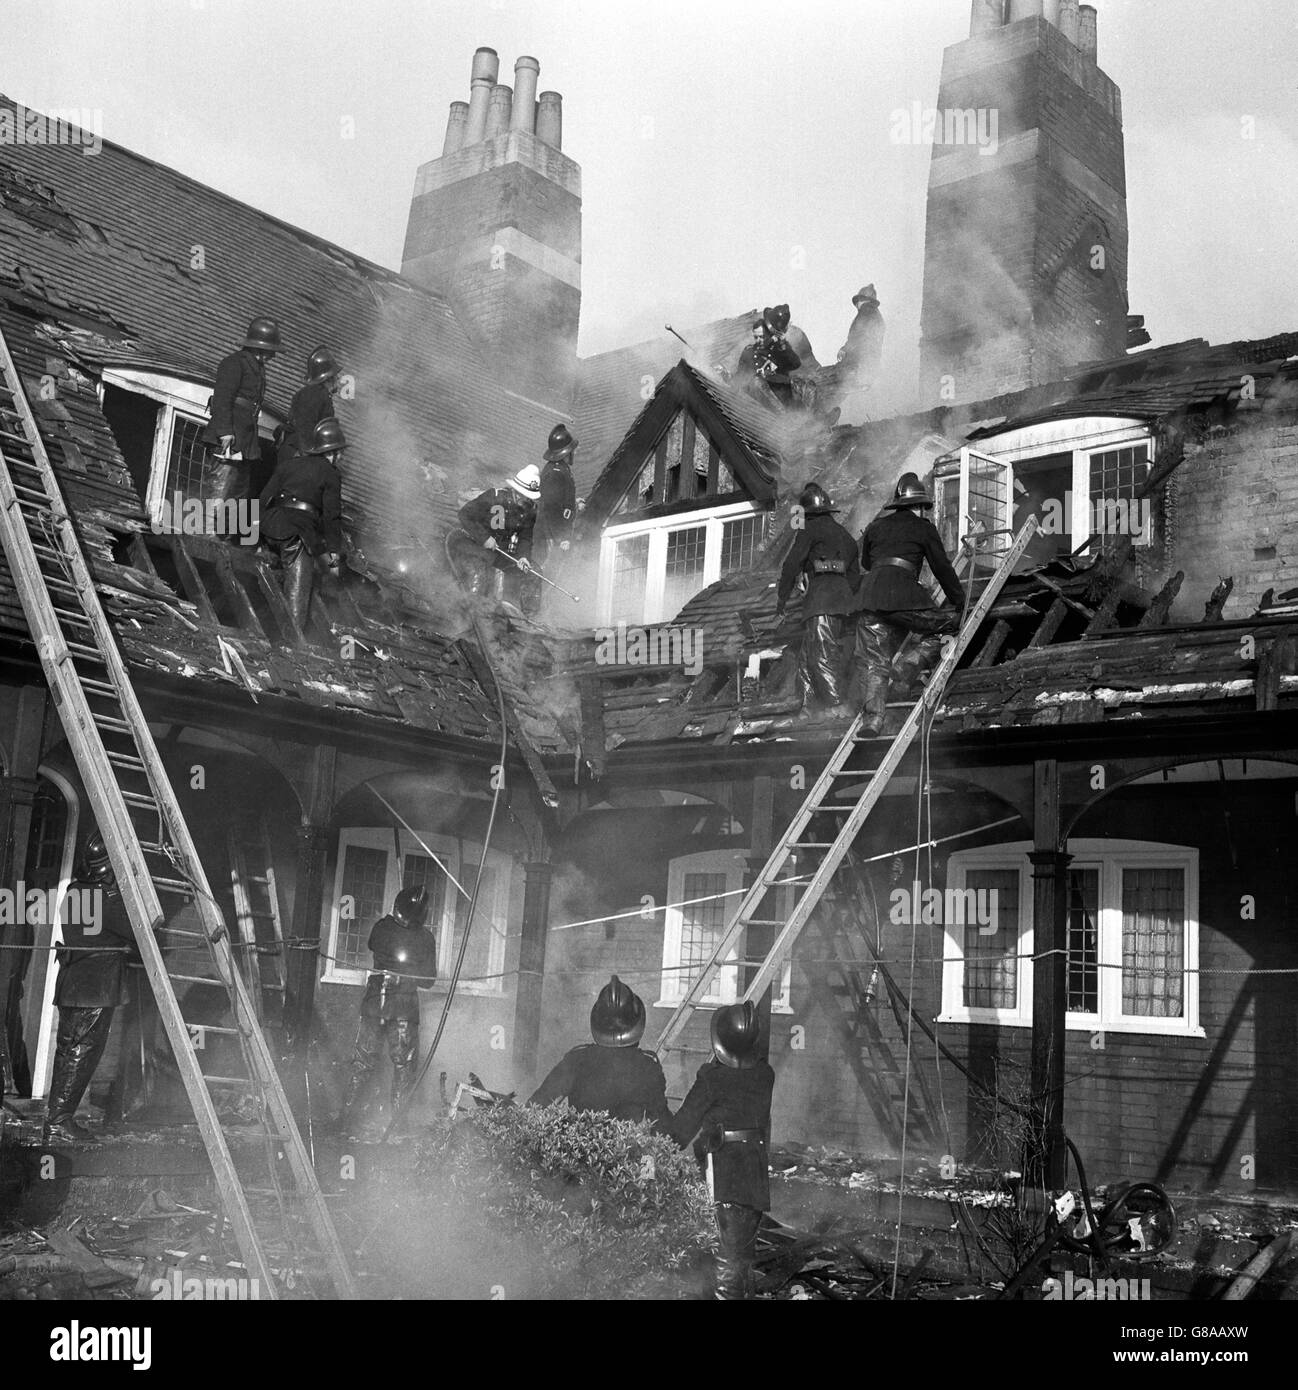 Disasters and Accidents - Skinners Alms Houses Fire - Palmers Green, London Stock Photo